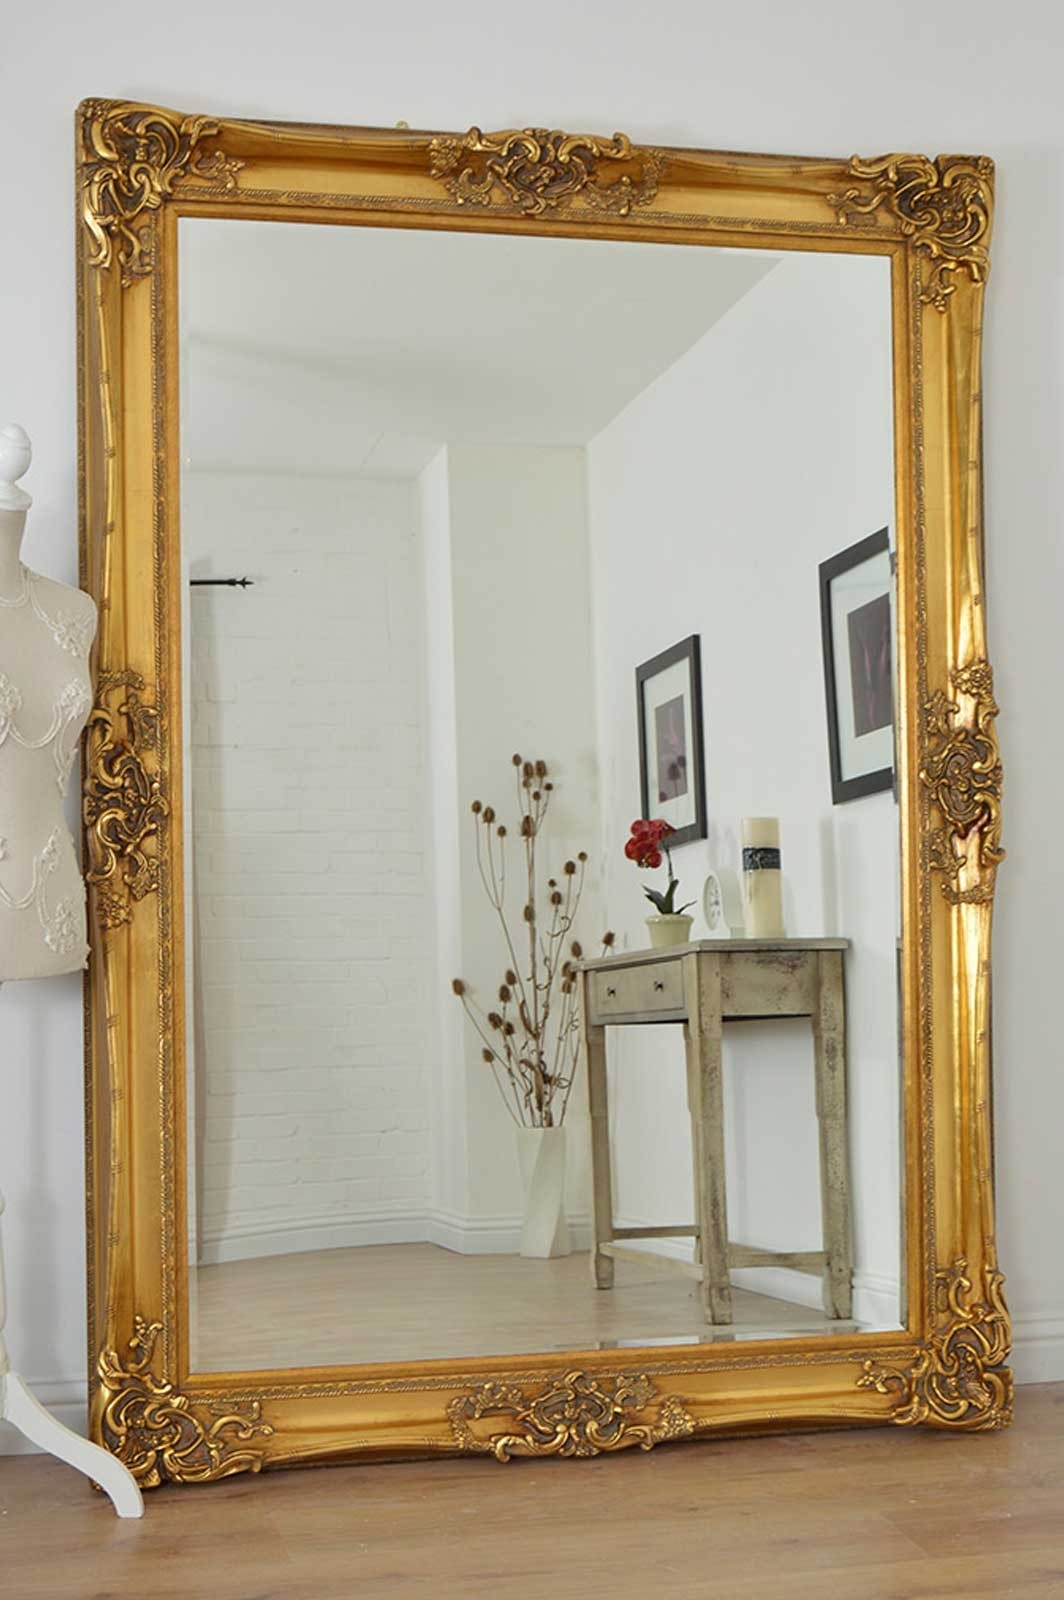 Mirroroutlet Shop For Large Mirrors Wall Mirrors Free Delivery Intended For Long Narrow Mirrors For Sale (Image 10 of 15)